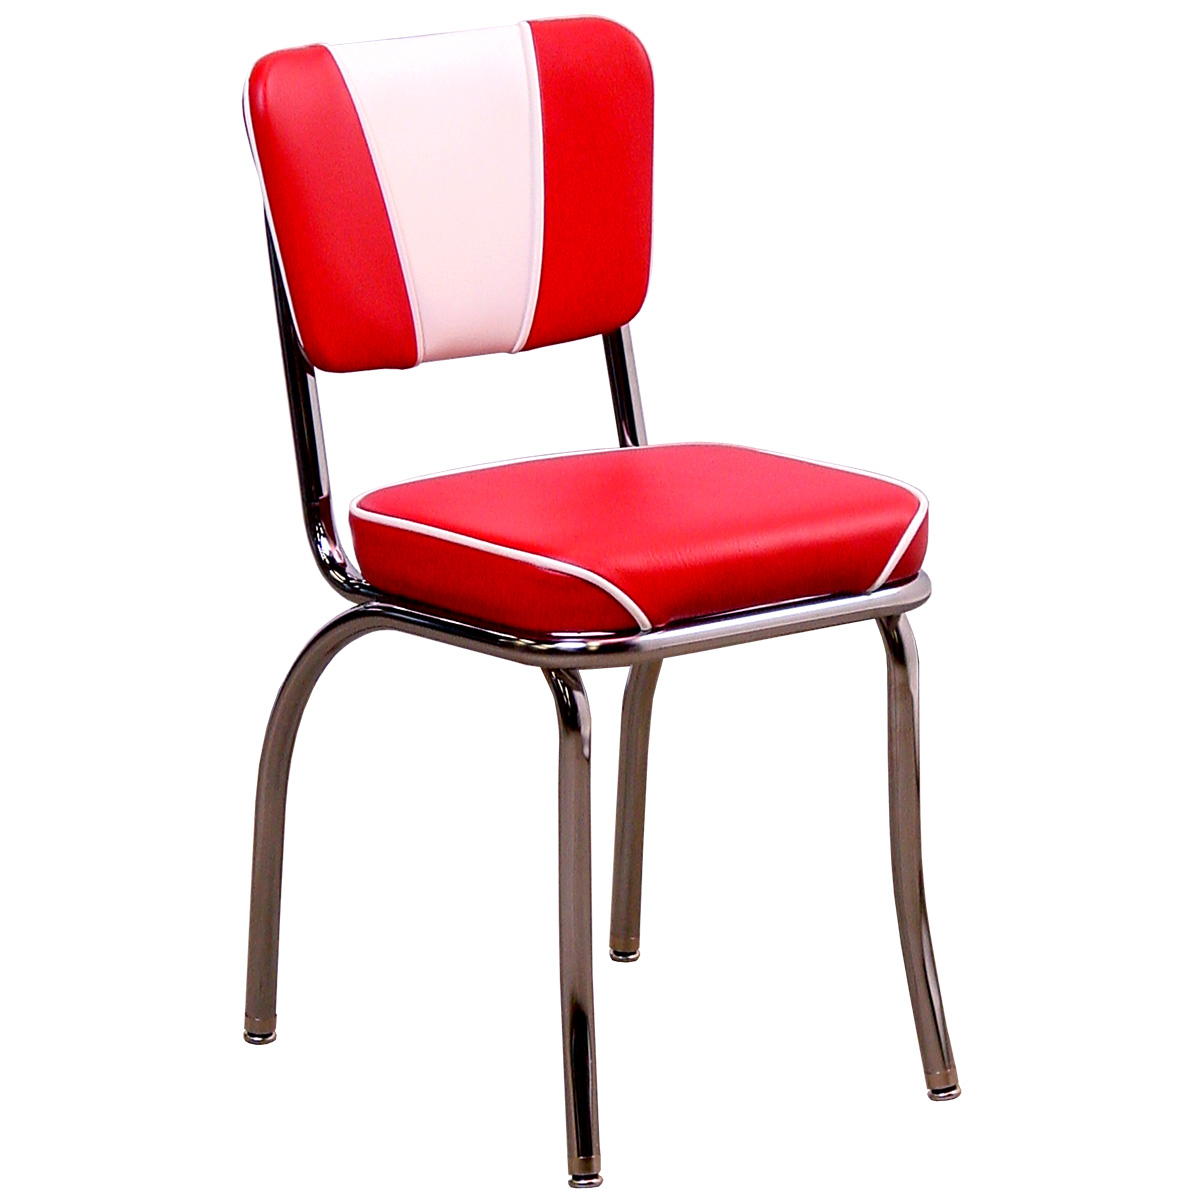 New V Back Diner Chair Classic Vinyl retro kitchen chairs